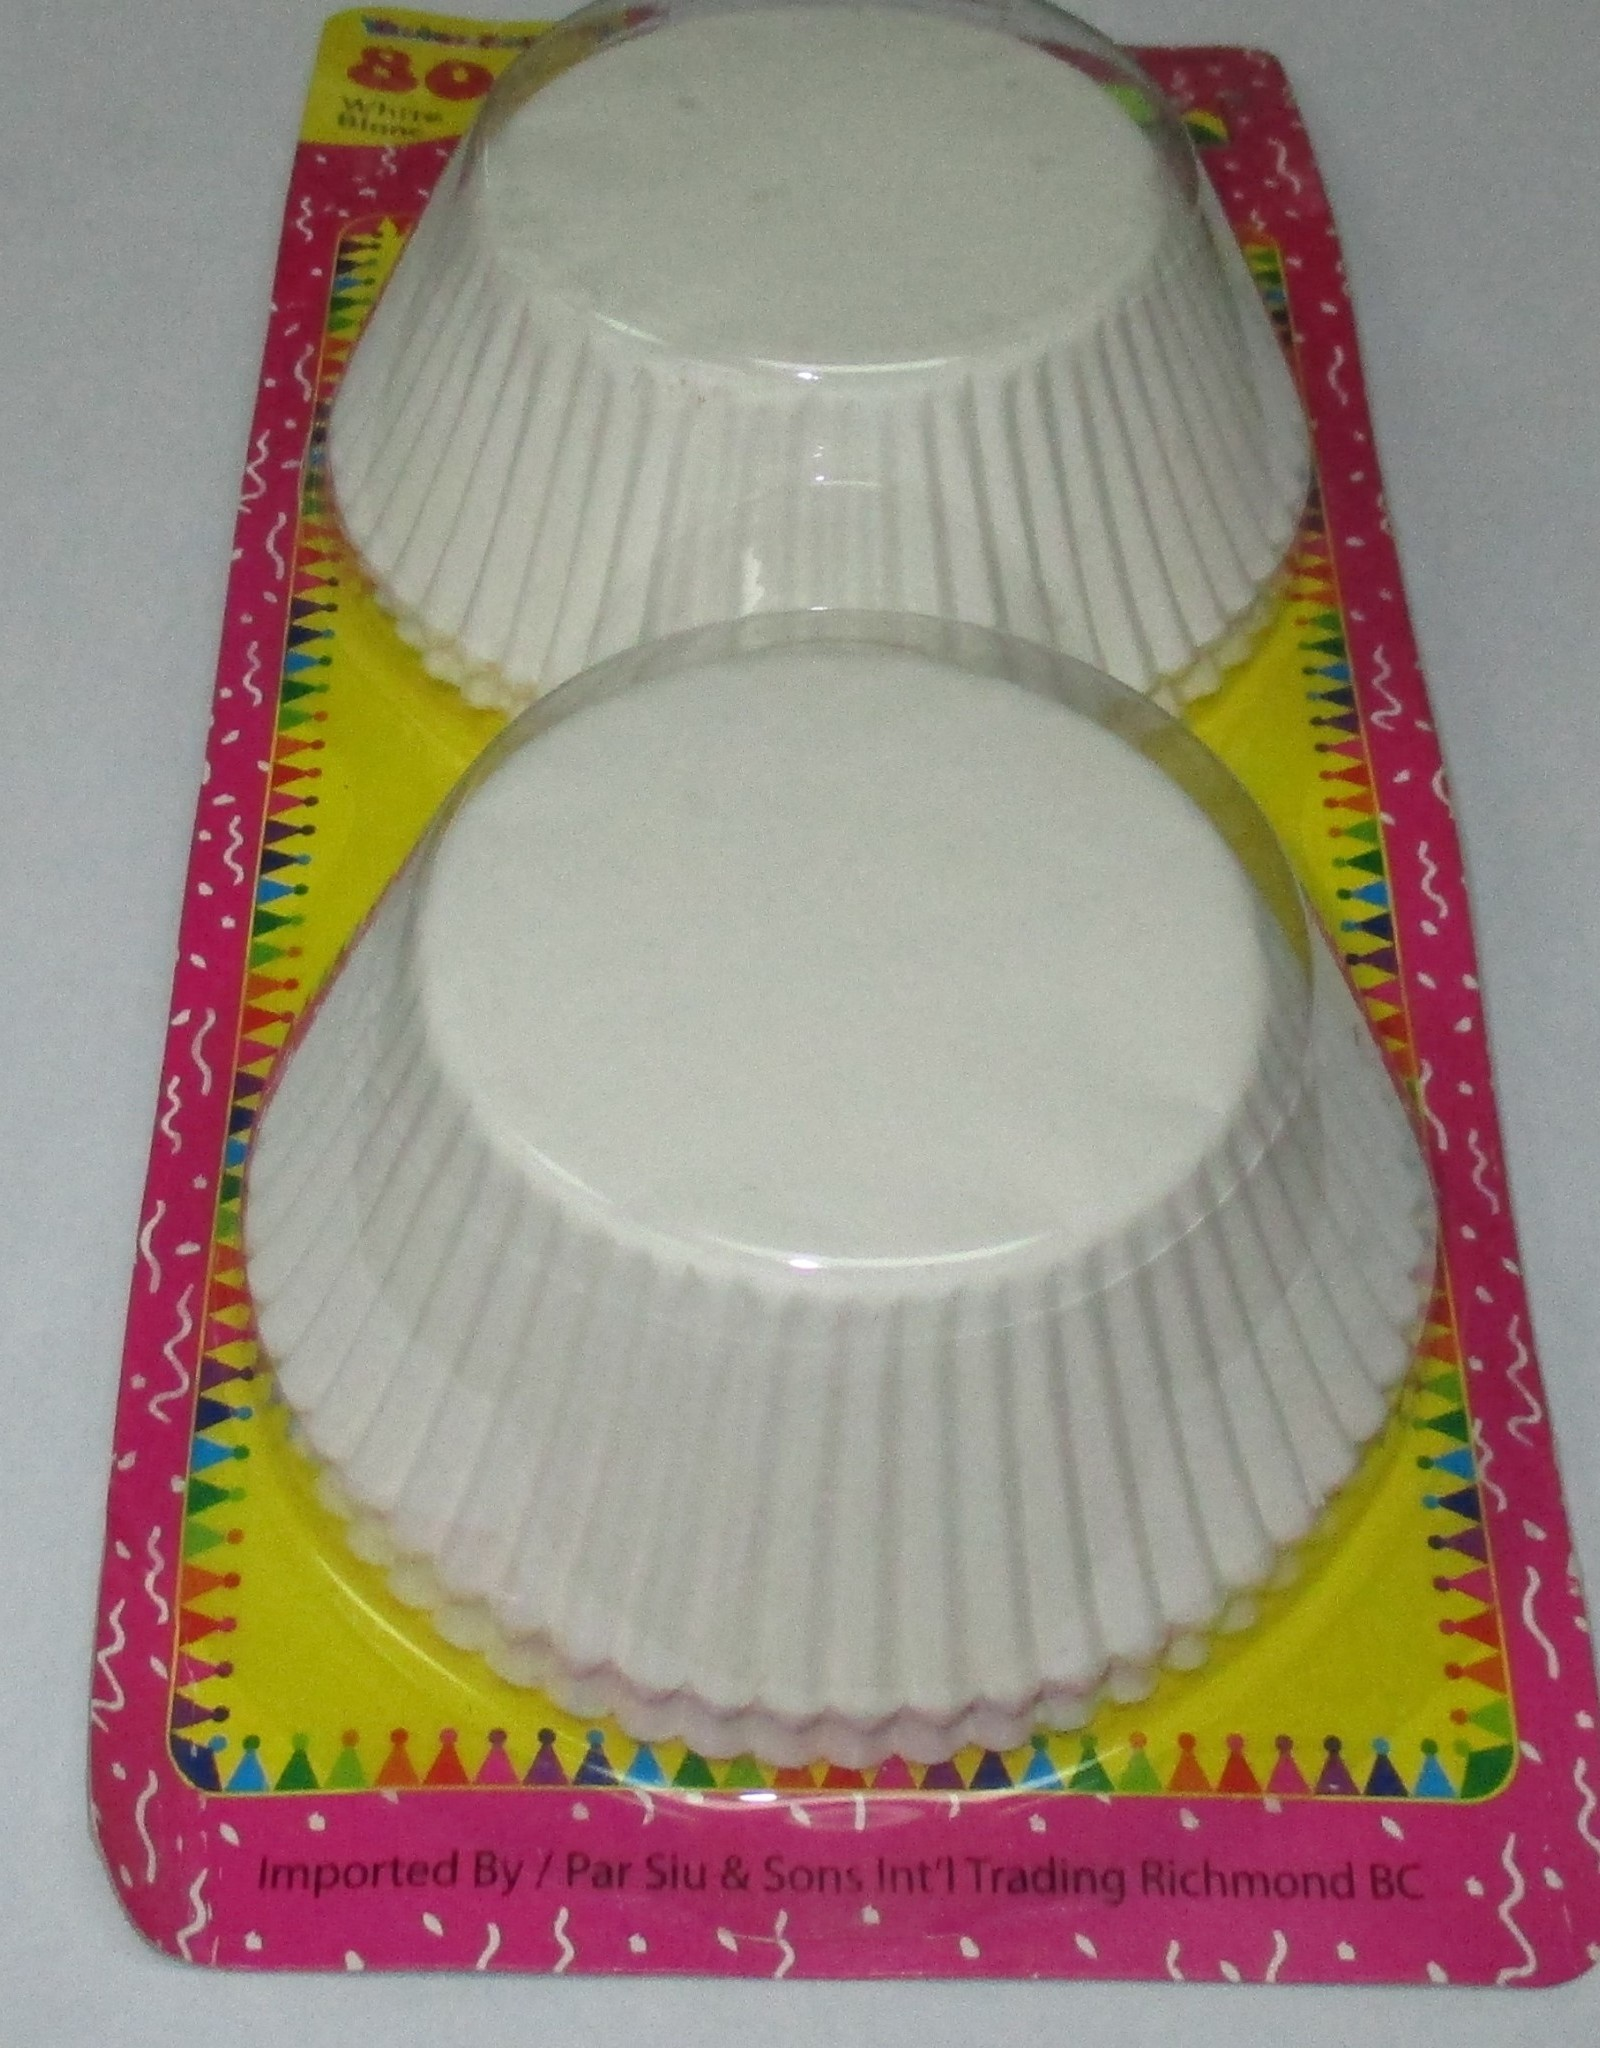 Colored Cake Cups 4.75 Inches White